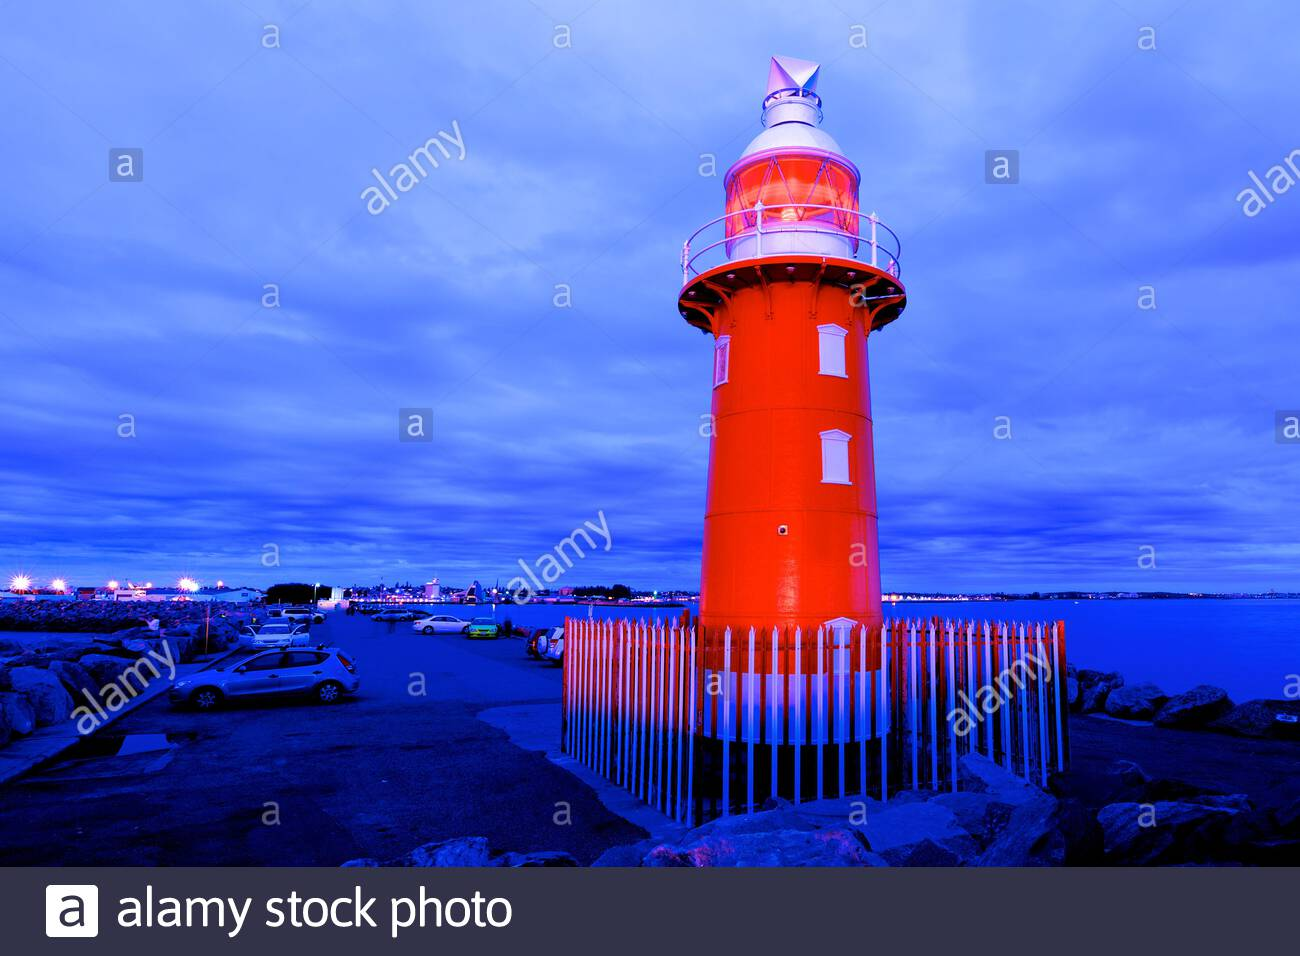 the-red-north-mole-lighthouse-at-dusk-at-the-entrance-to-fremantle-harbour-in-western-australia-it-has-been-in-operation-since-1906-2F1CBMX.jpg